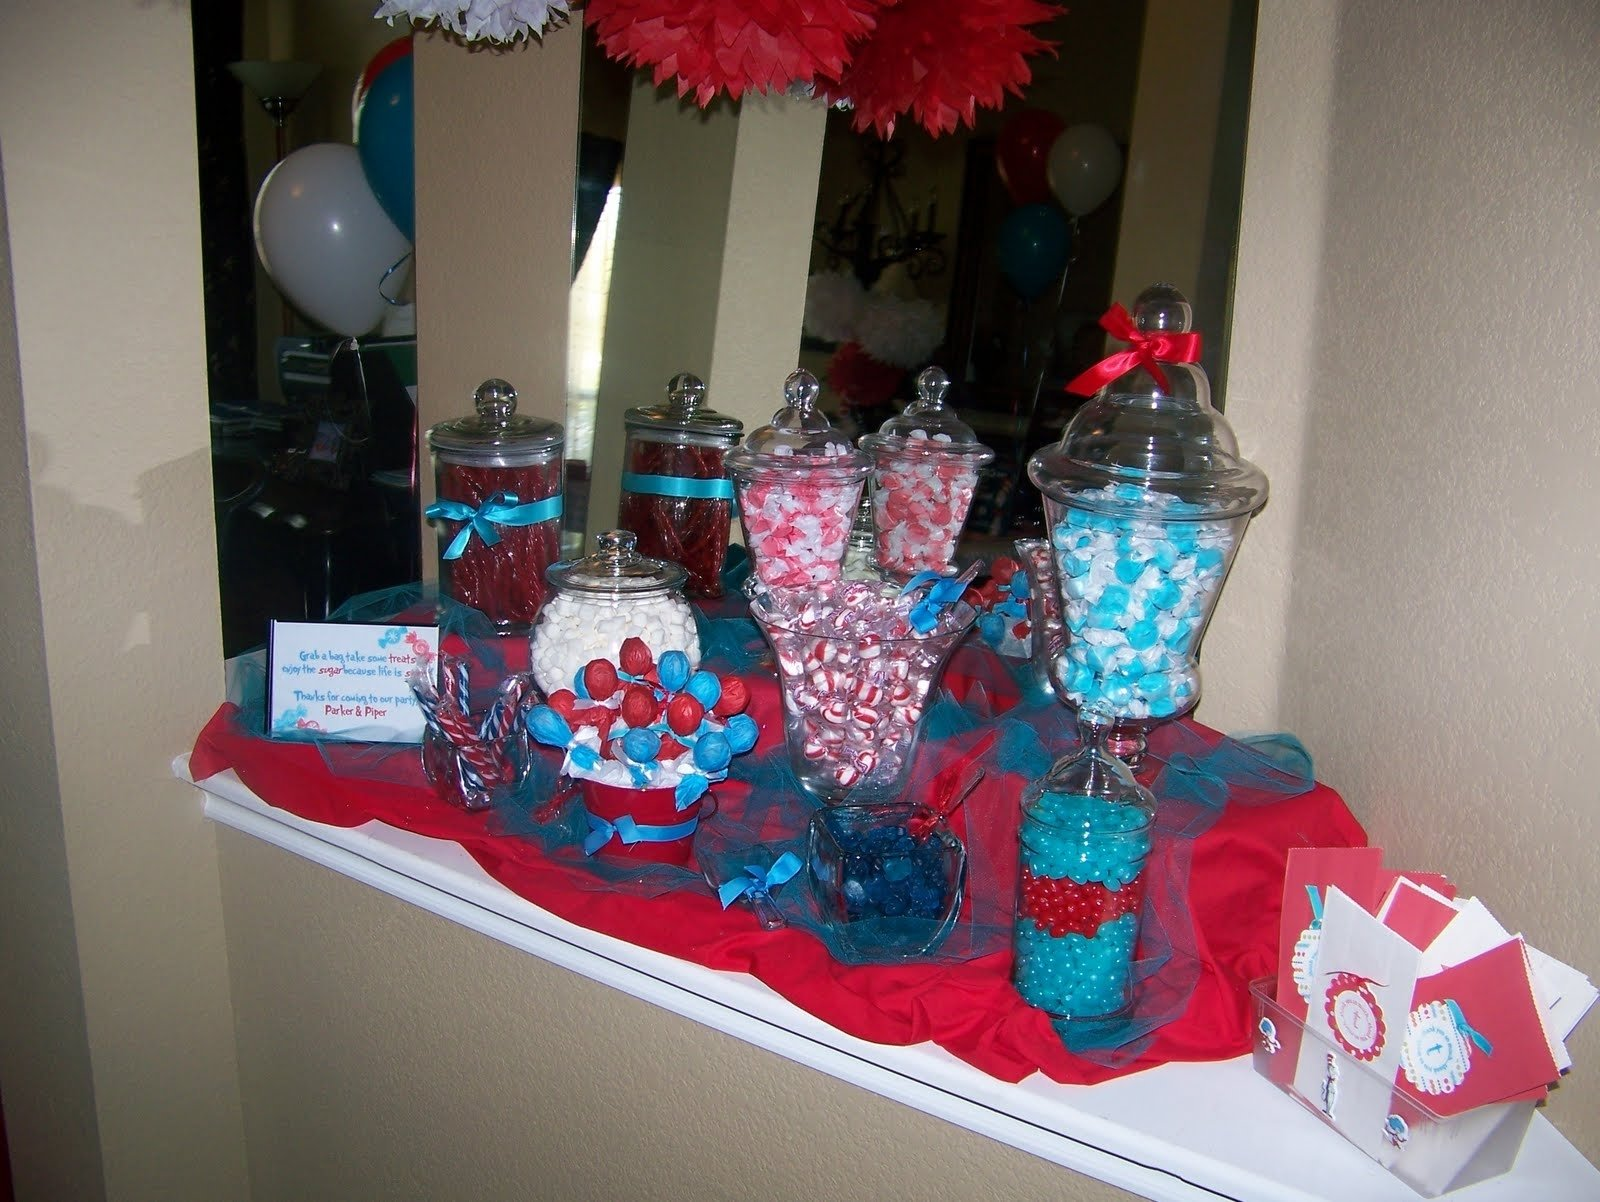 10 Lovely Thing 1 And Thing 2 Birthday Party Ideas dr seuss thing 1 thing 2 birthday party giggles galore 3 2020